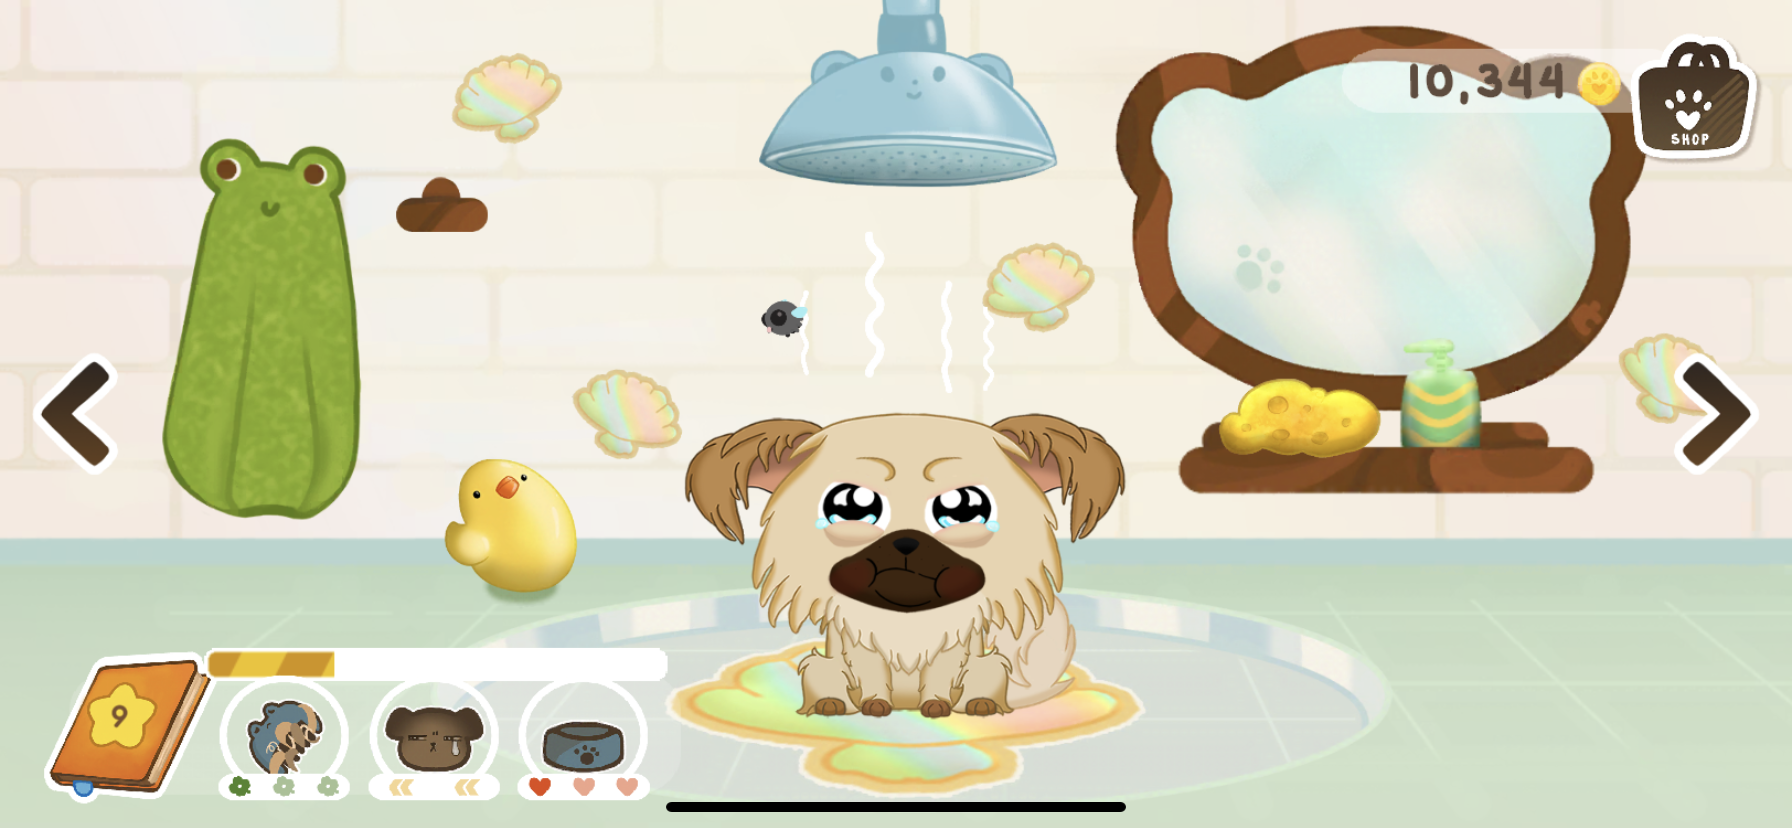 Your pet gets upset if you don't bathe him/her from time to time!